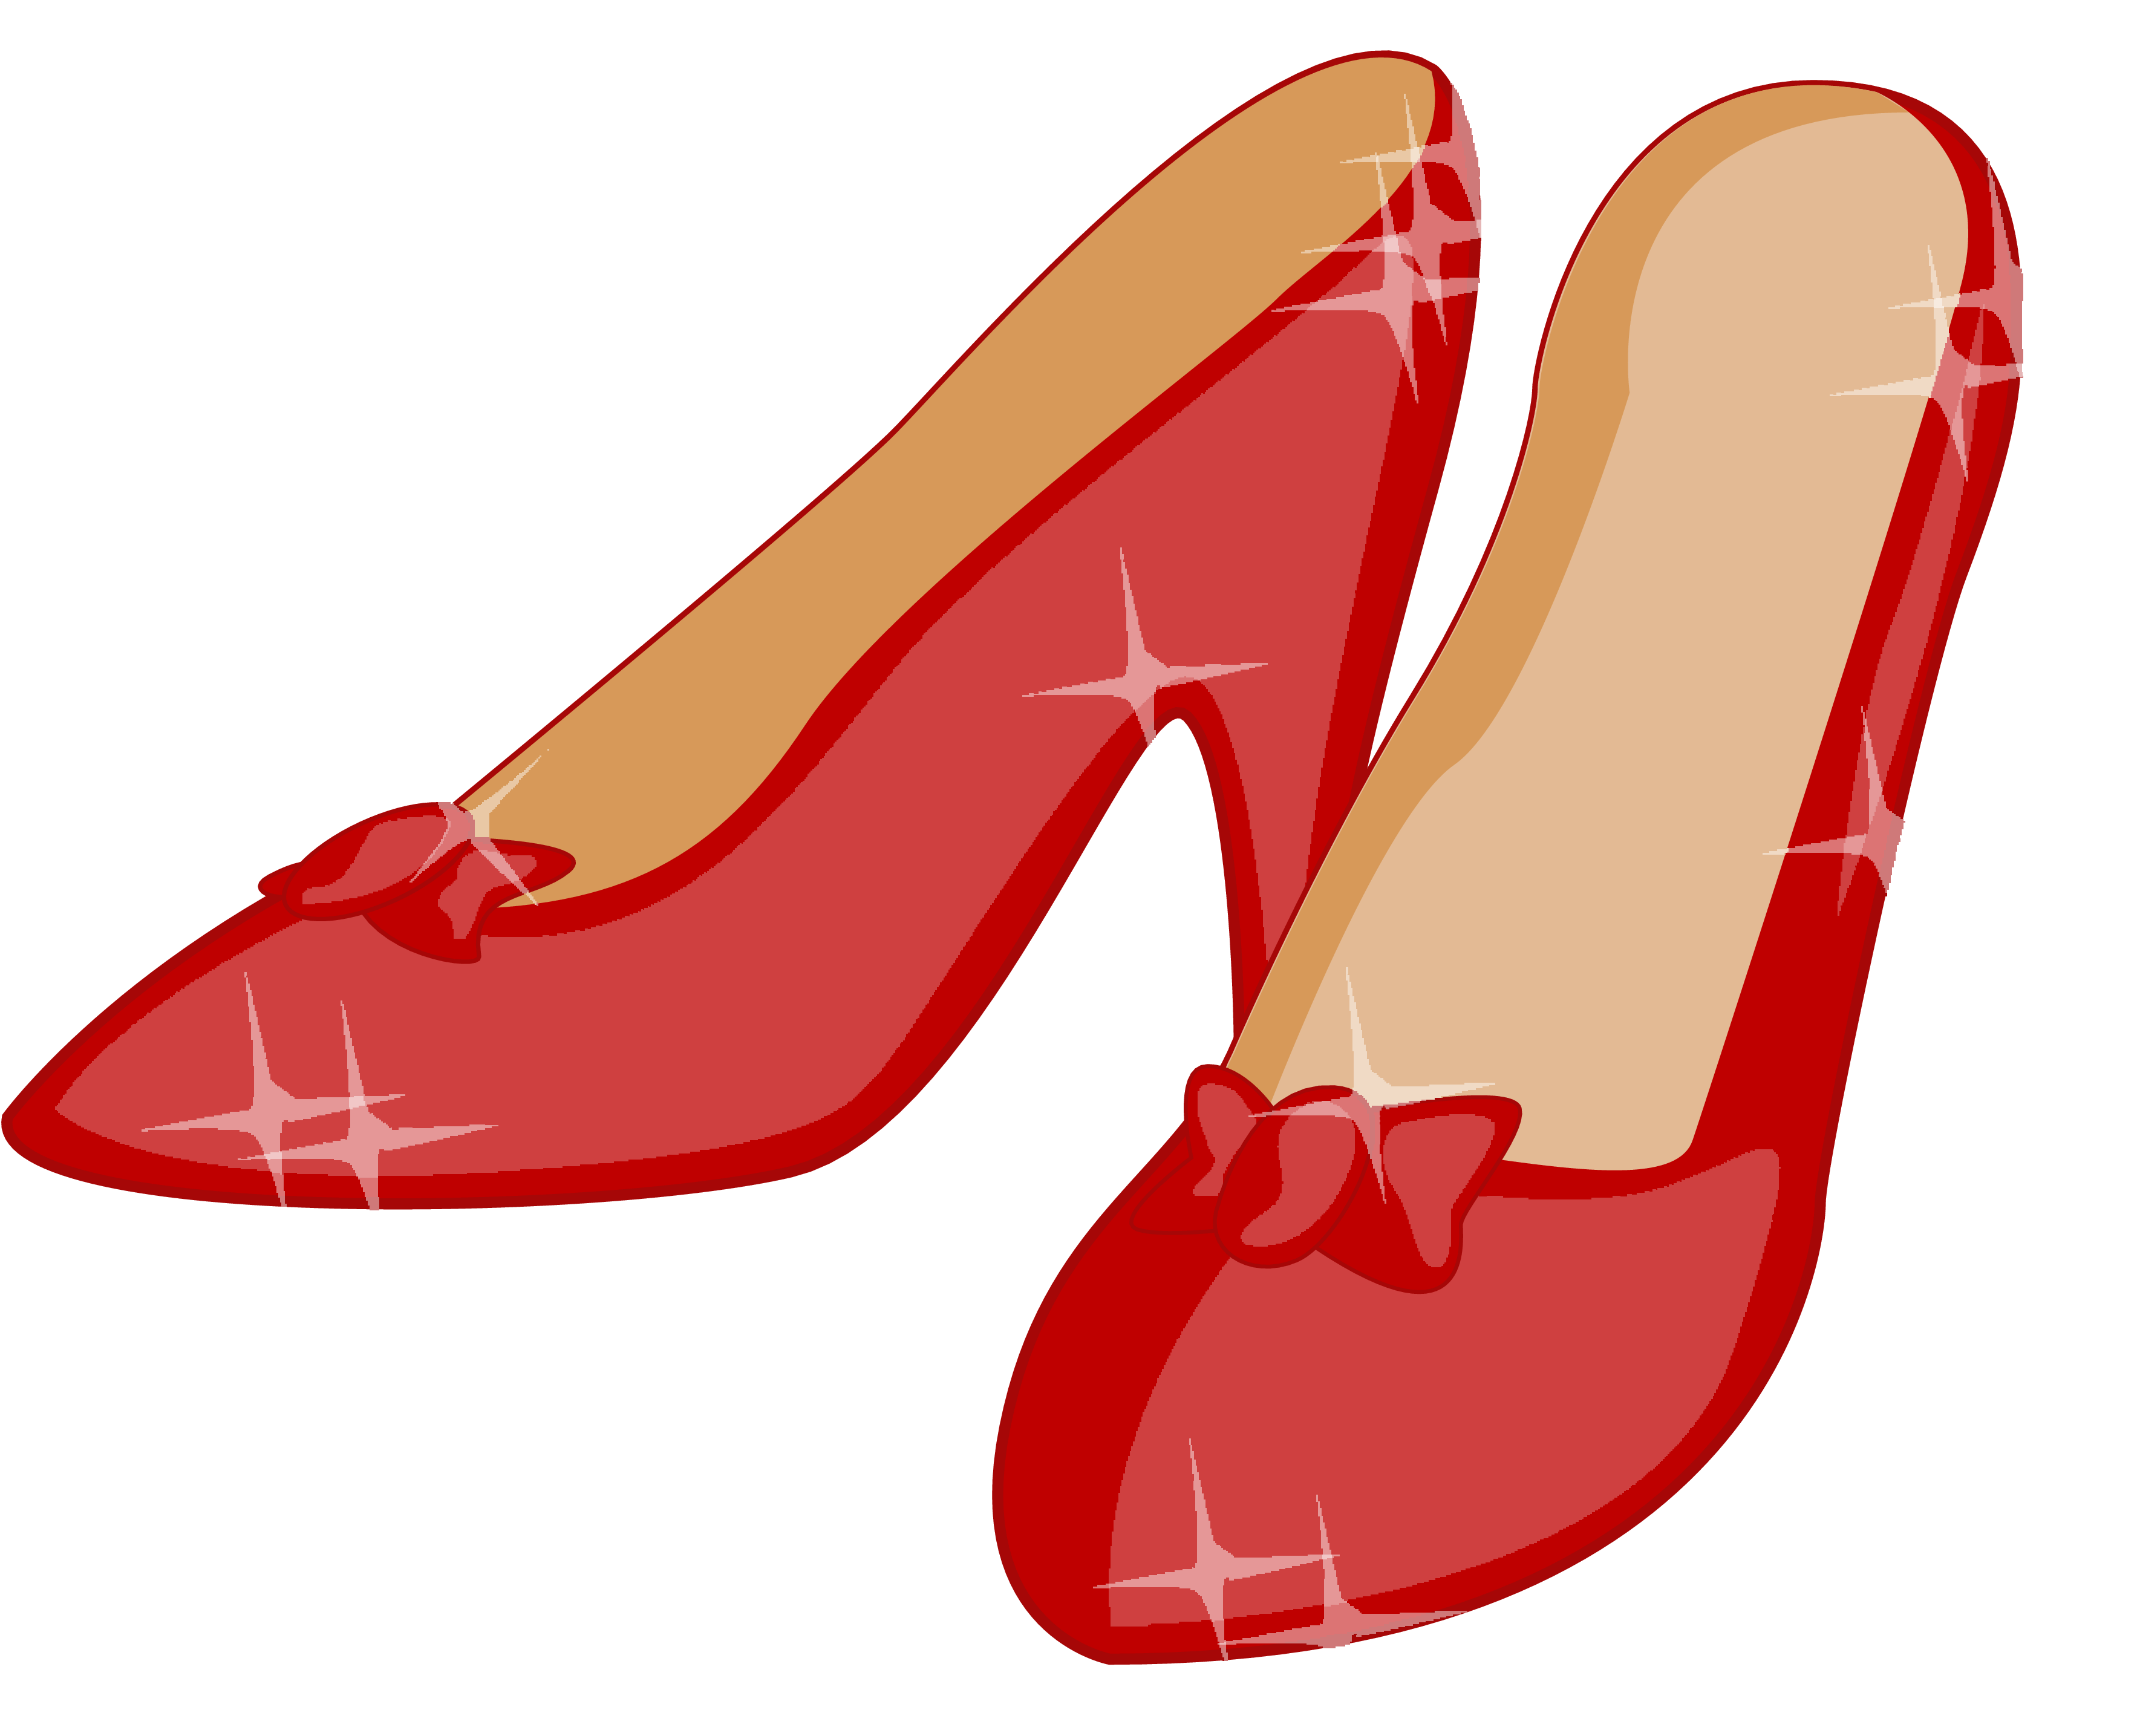 ruby slipper graphic   House pic project   Shoe clips ...